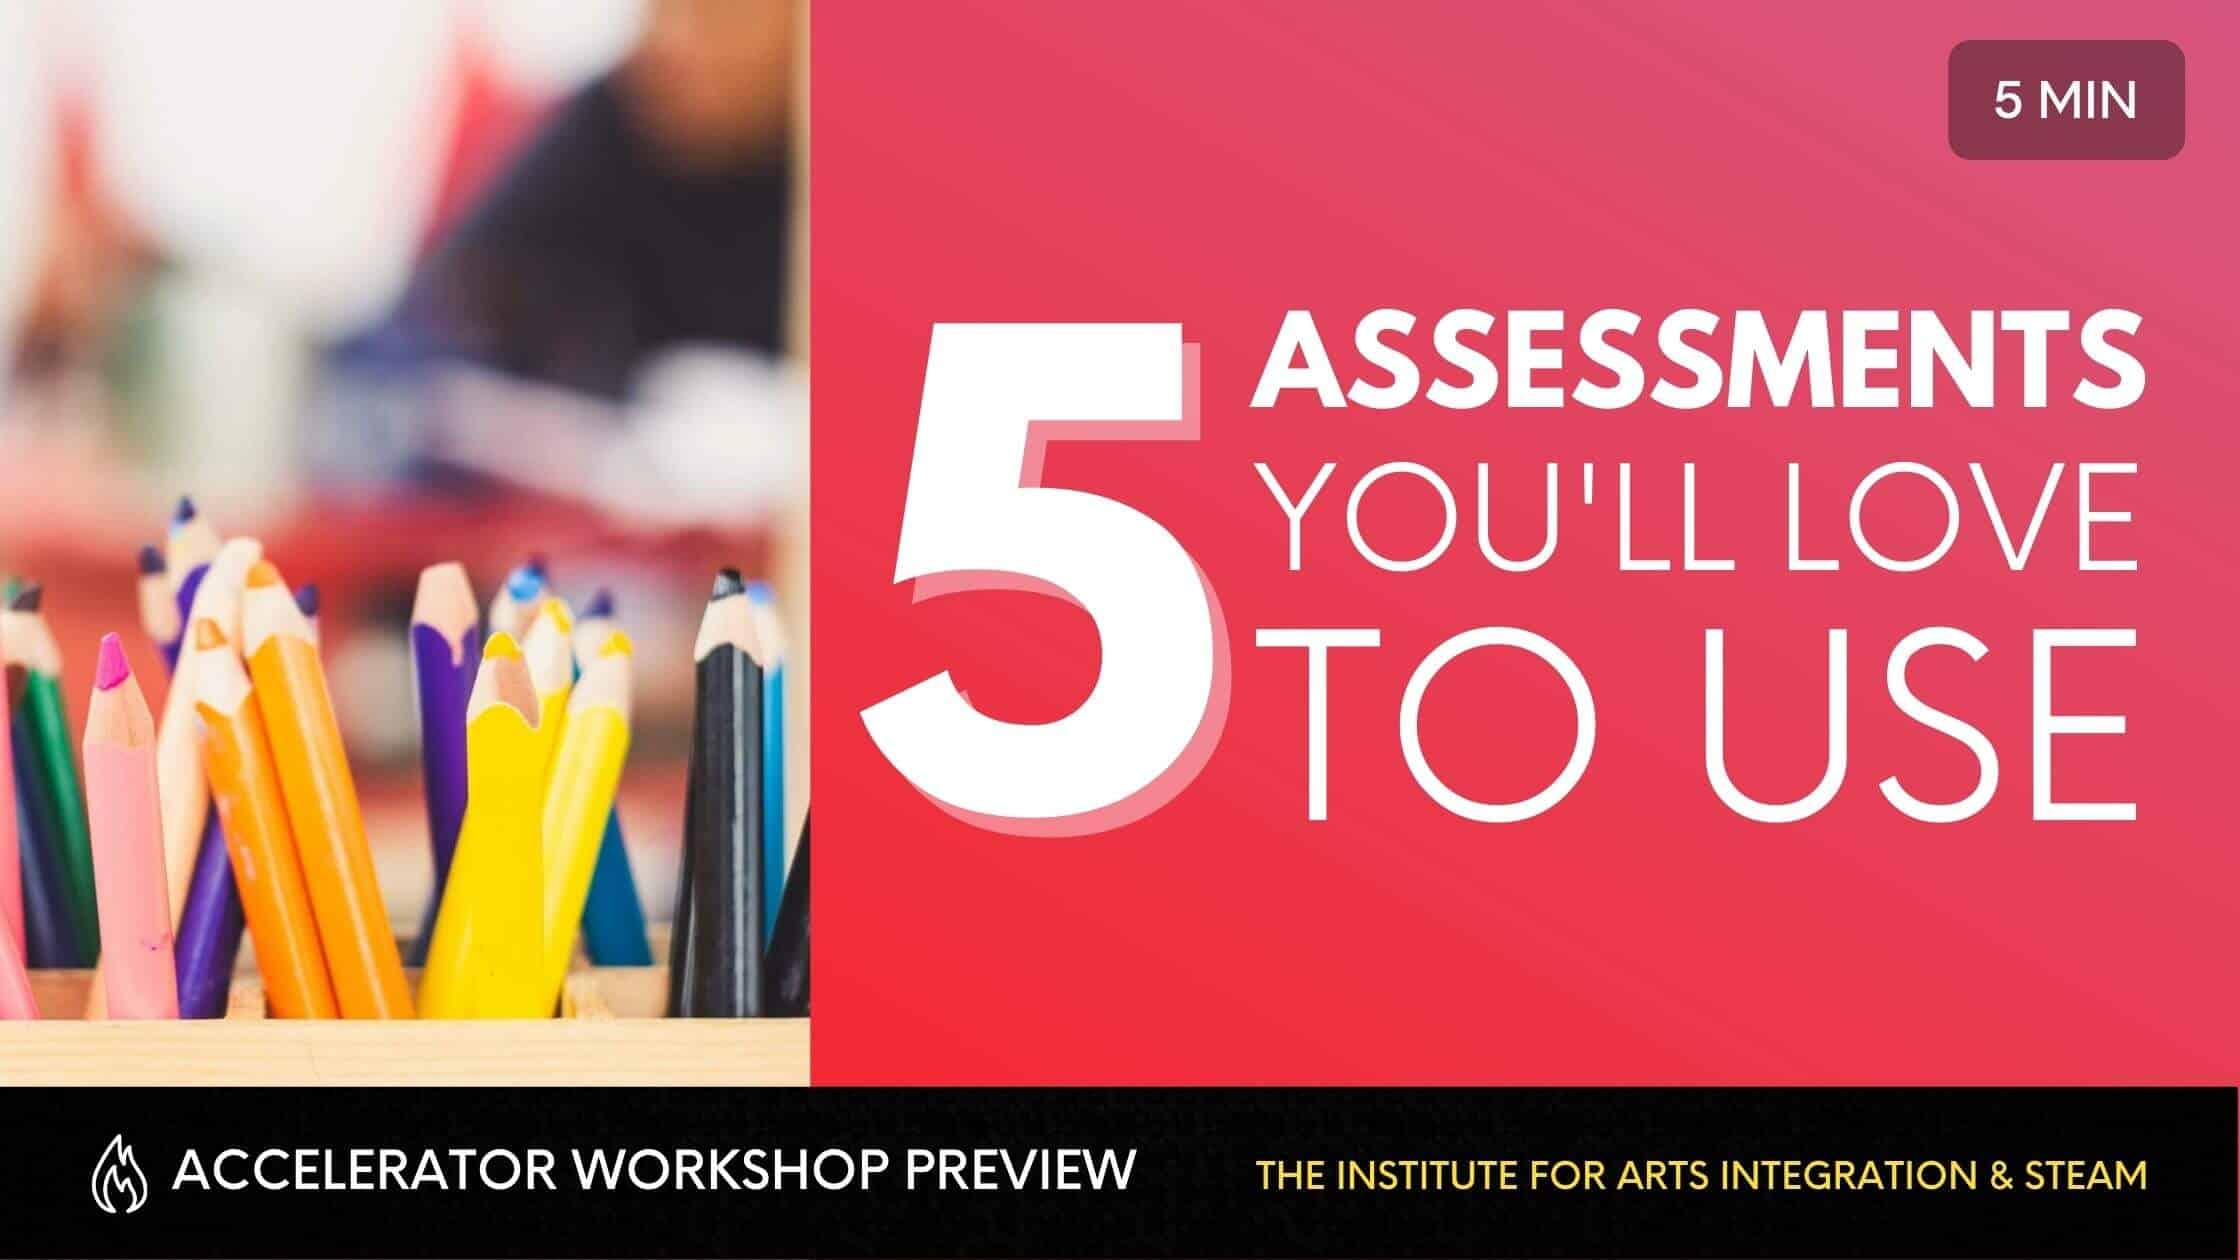 Assessments You'll Love to Use